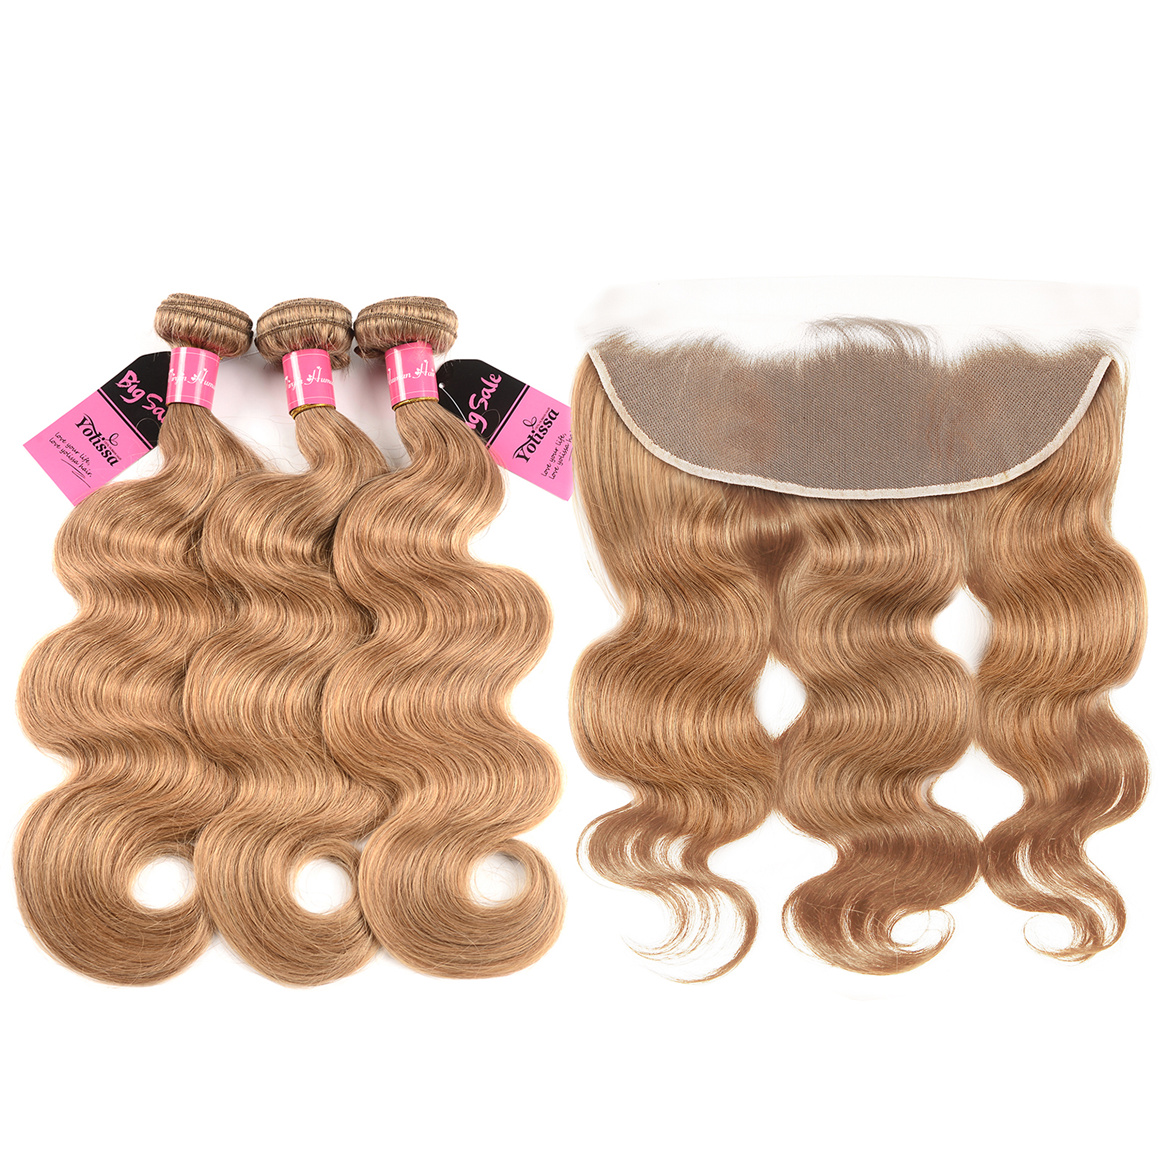 #27 Body Wave Hair 3 Bundles With Frontal